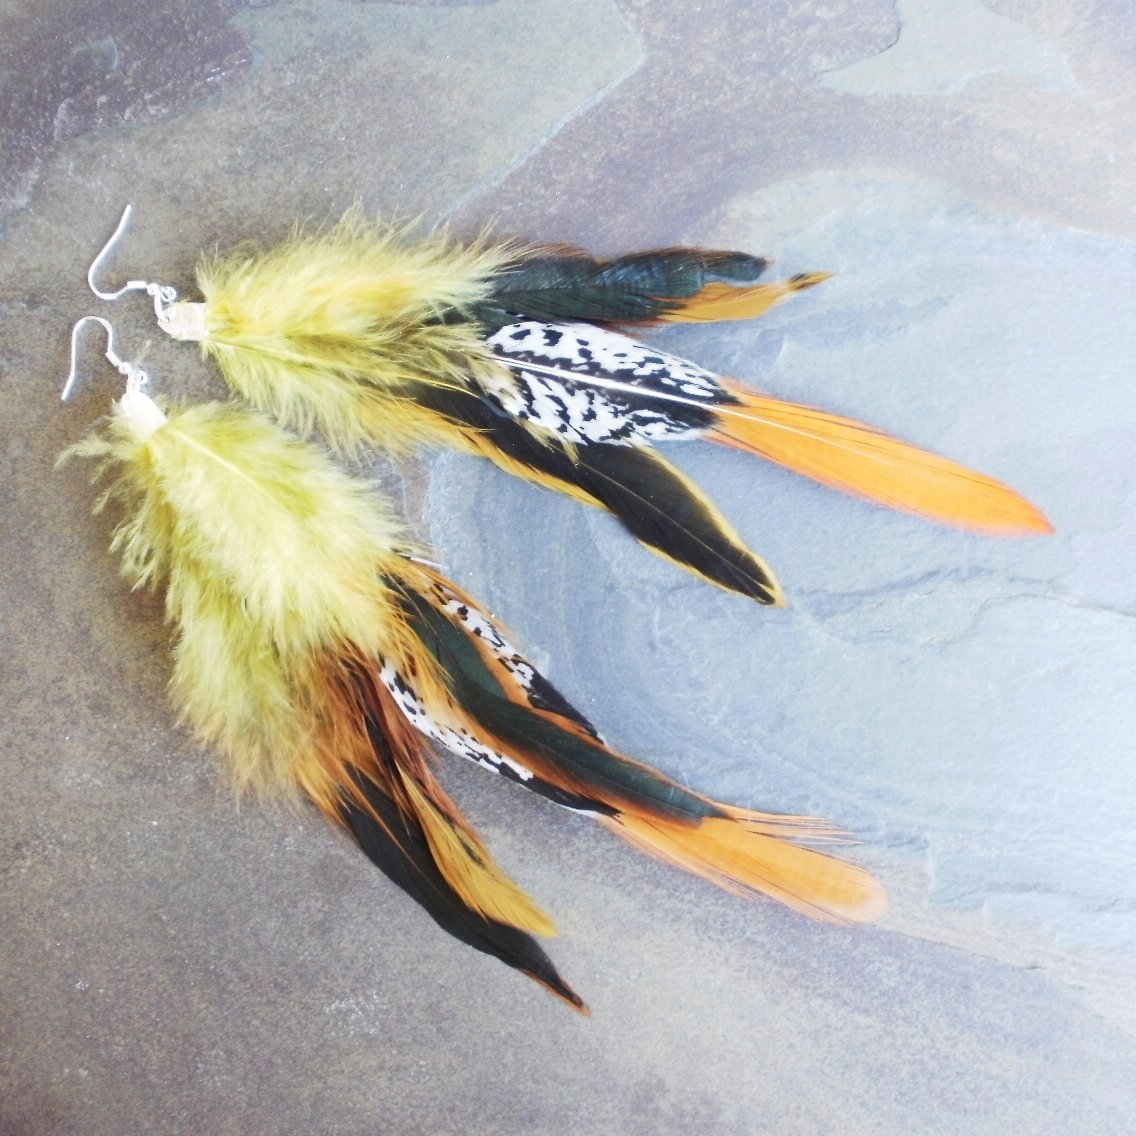 Pheasant Tail Feather Earrings Extra Long Yellow Black 8 Inch